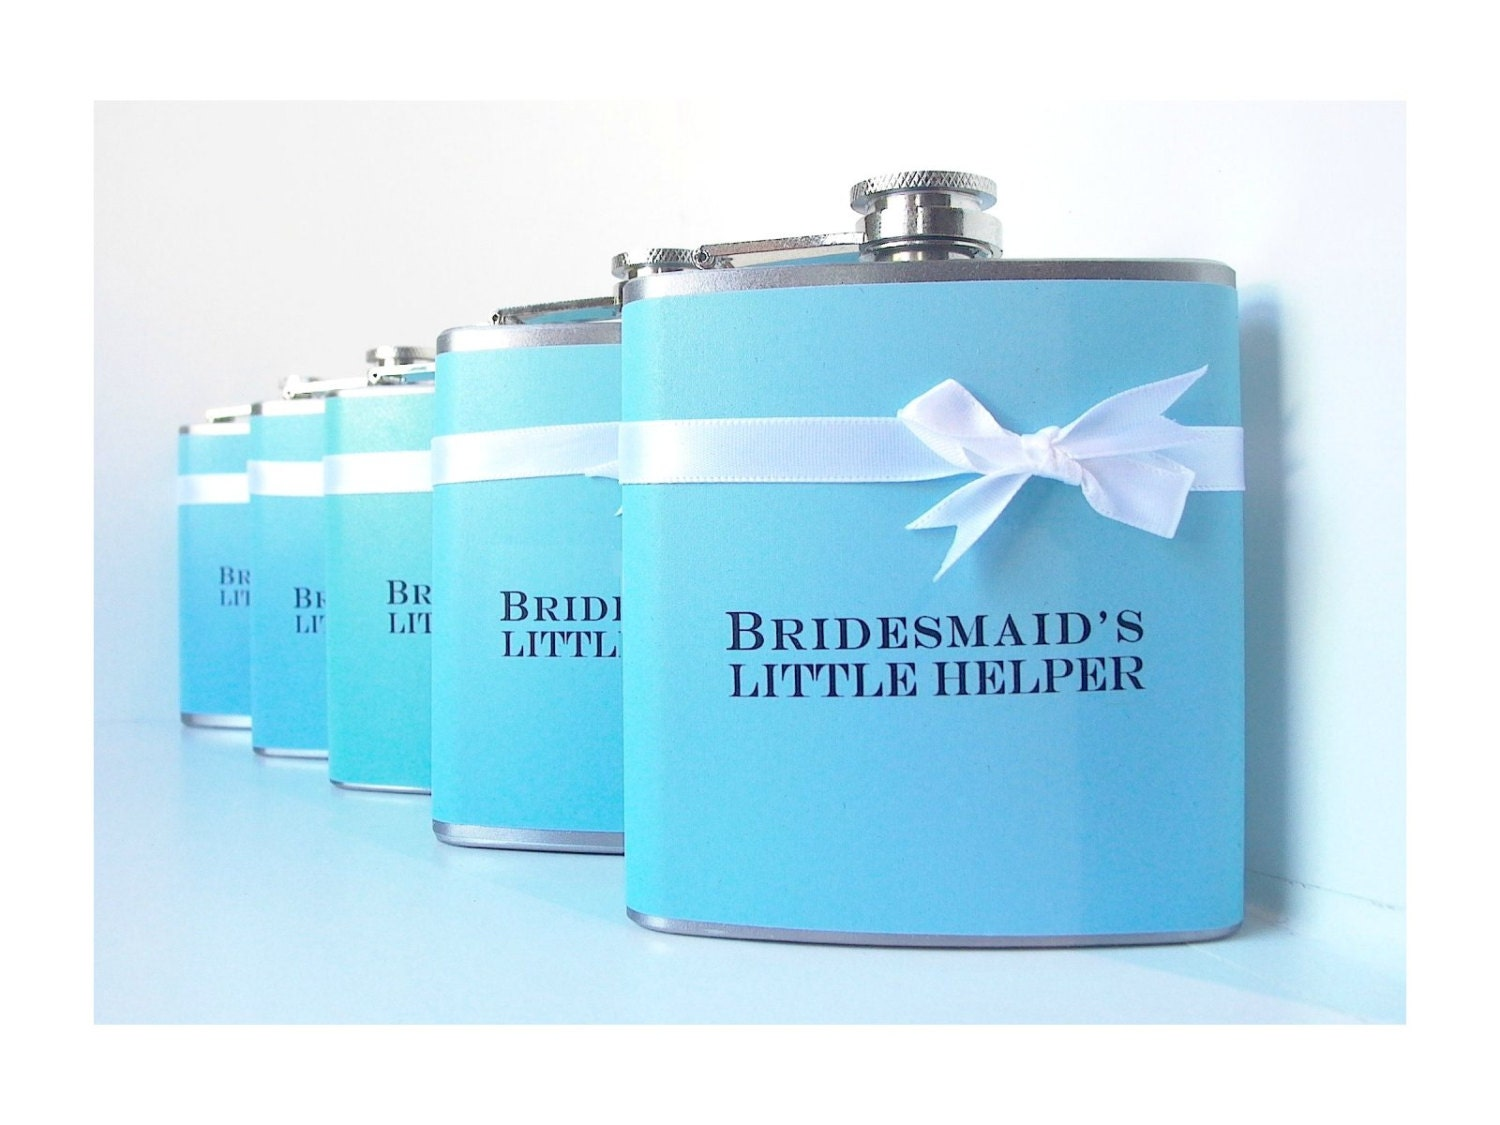 Bridesmaids Wedding Gifts: Personalized Flask Bridesmaid Gift Set Bridesmaids Gifts